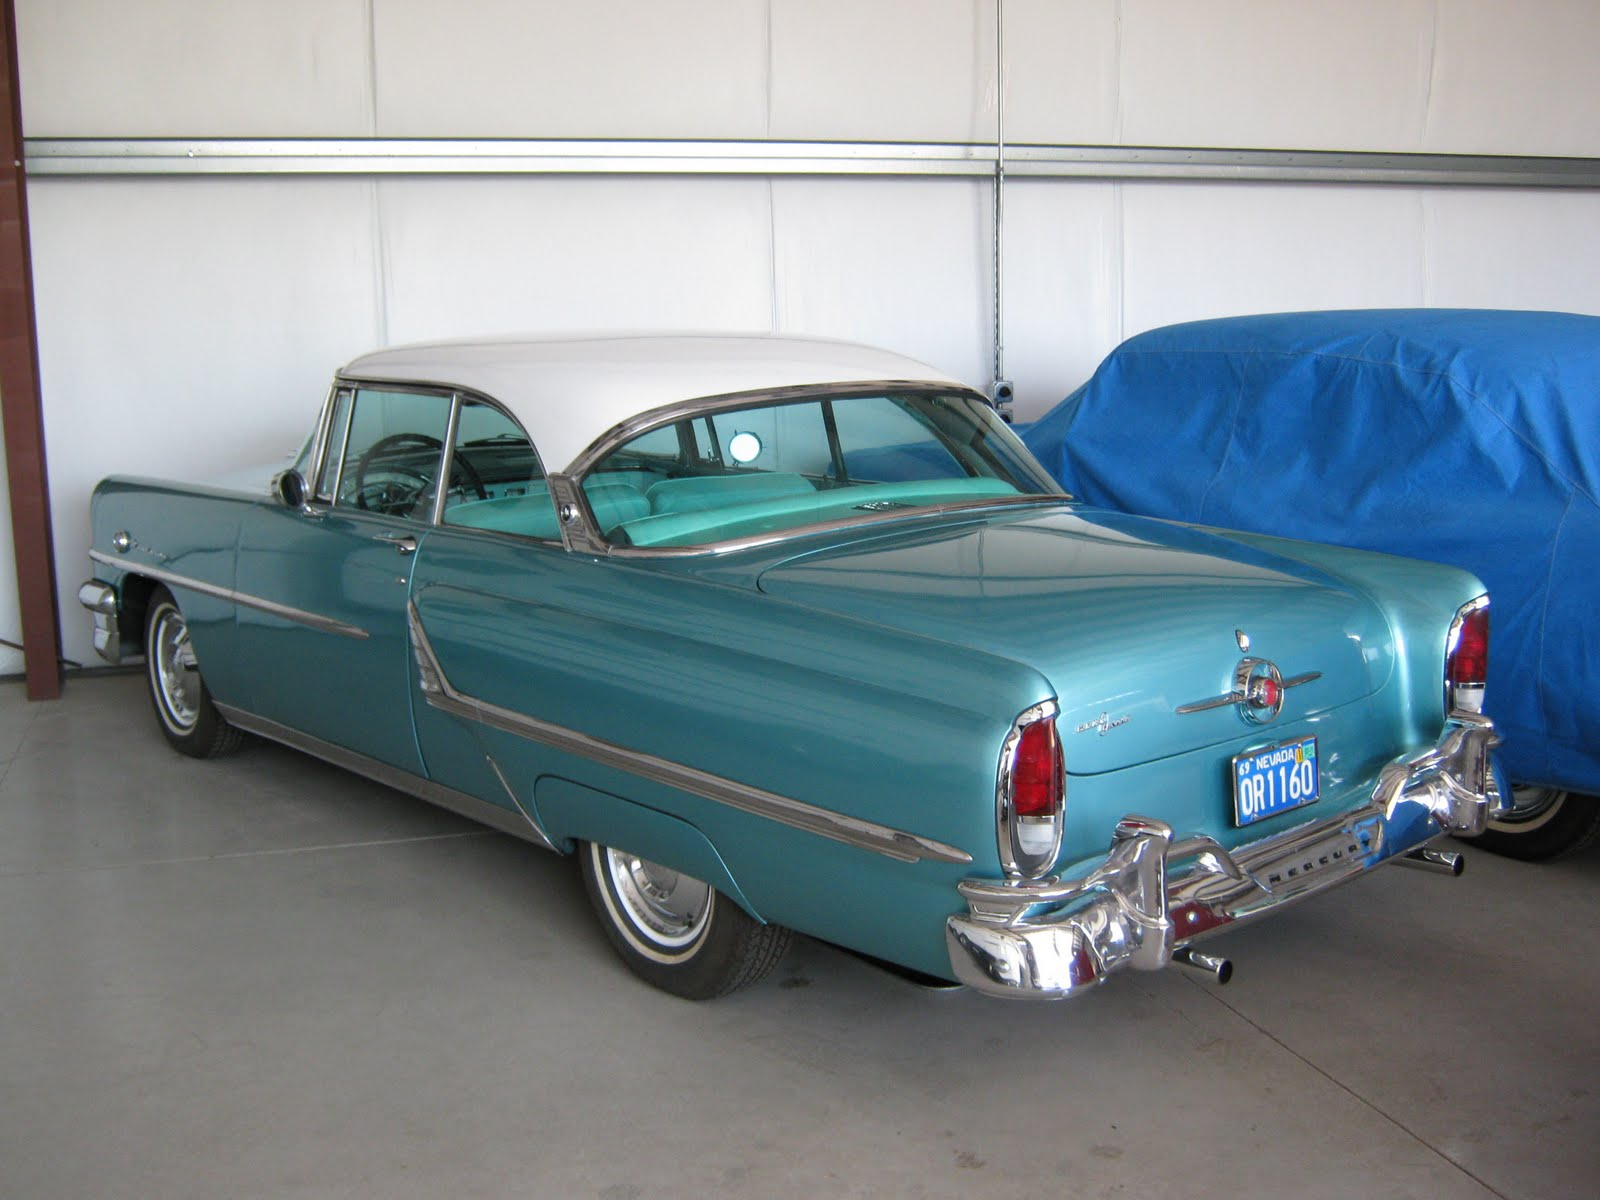 Albert 39 s classic cars email maryannarep 1955 for 1955 mercury monterey 4 door